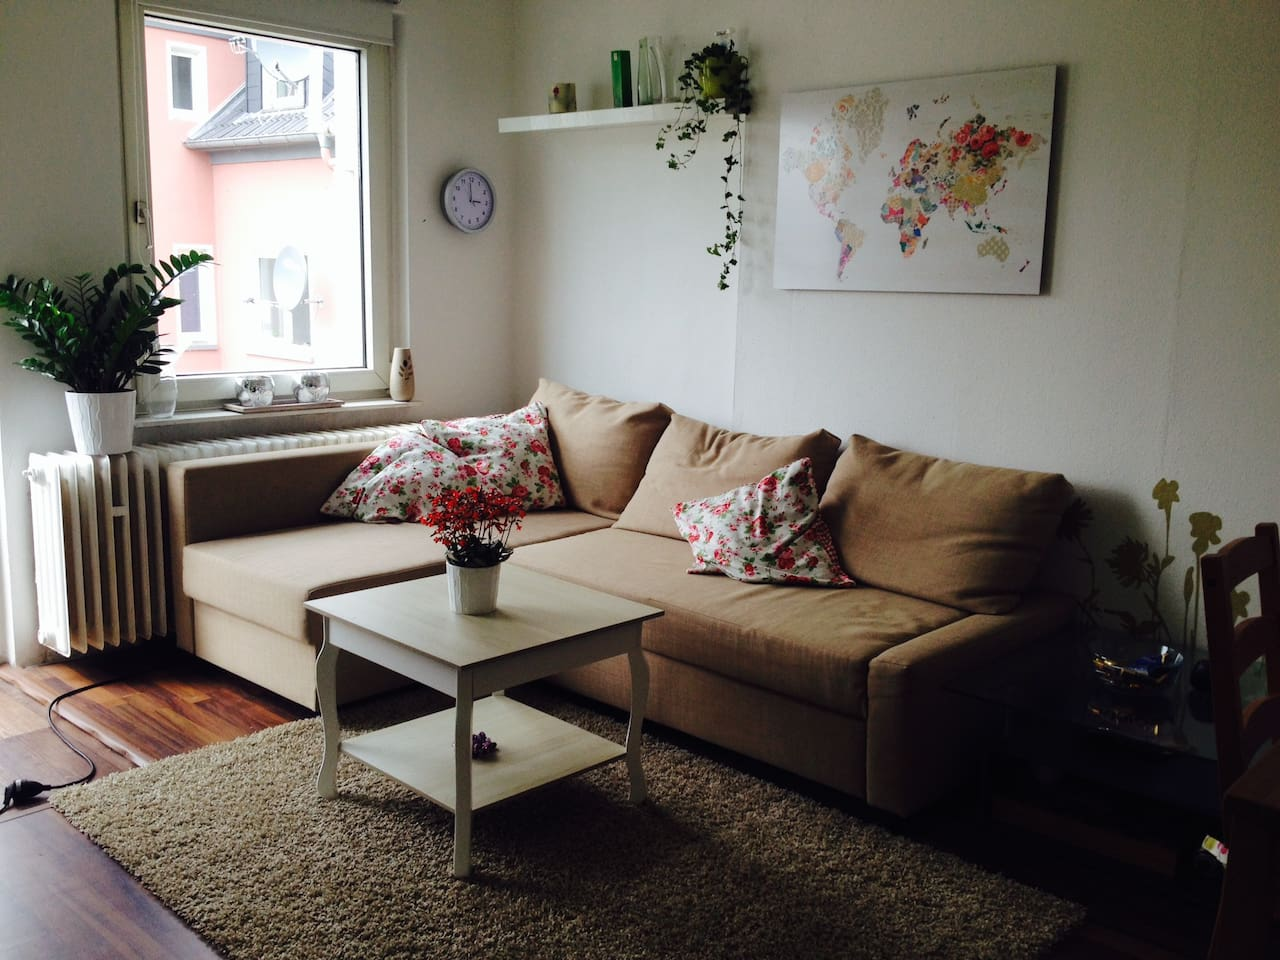 Very central located 45qm apartment